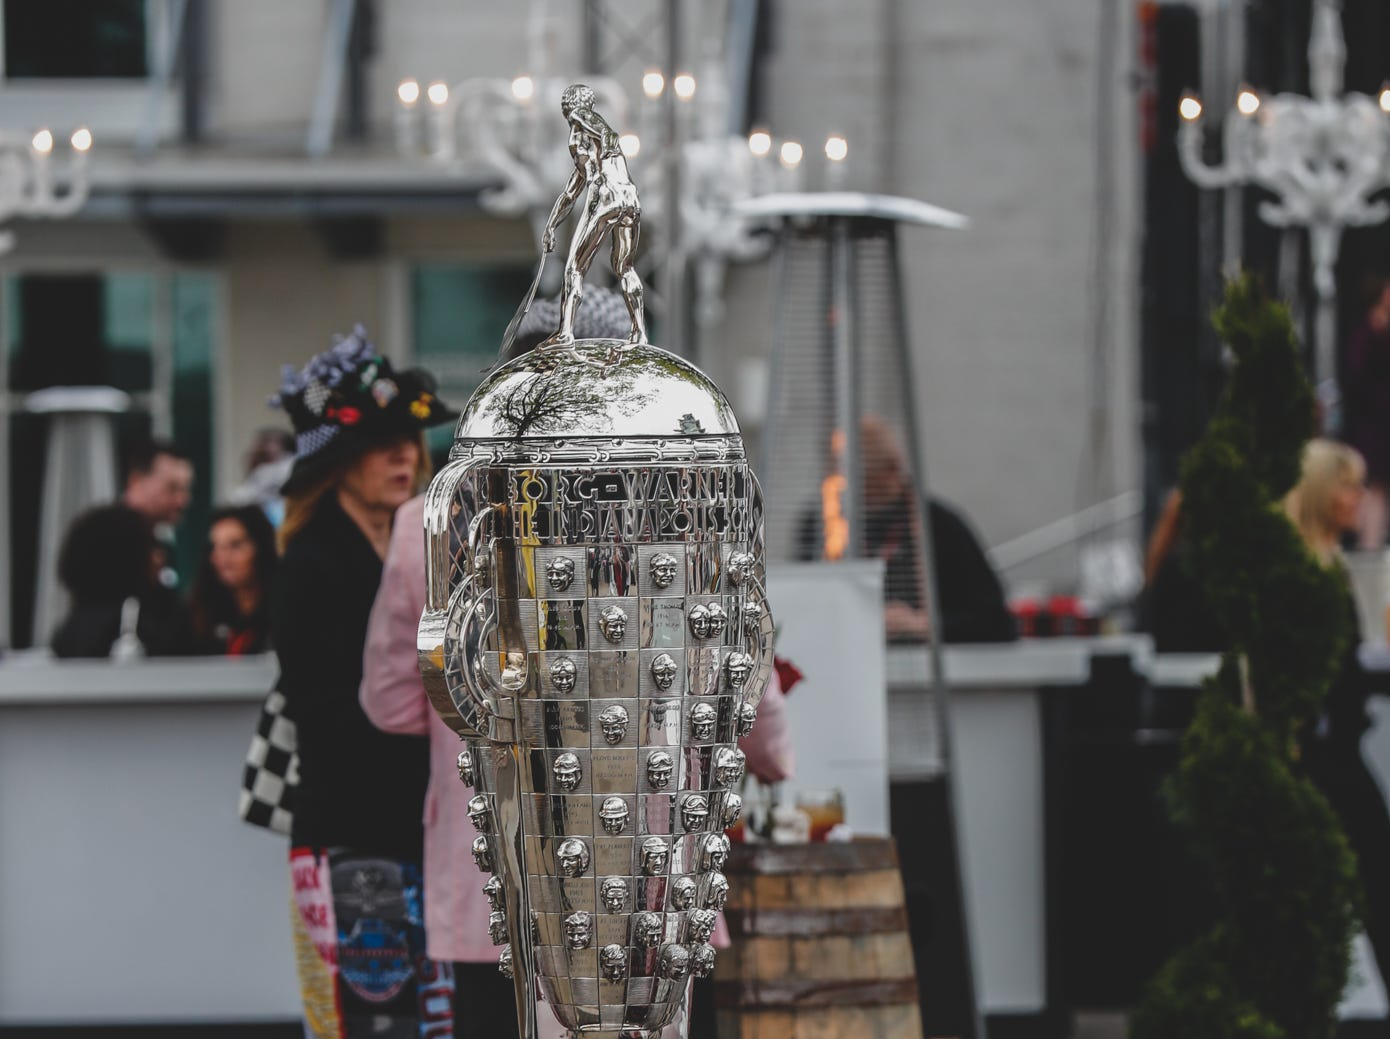 The Borg-Warner Trophy was on display at the Rev Indy fundraiser, held at the Indianapolis Motor Speedway on Saturday, May 4, 2019. Funds raised support the IU Health Foundation statewide and the IU Health Emergency Medical Center at IMS.